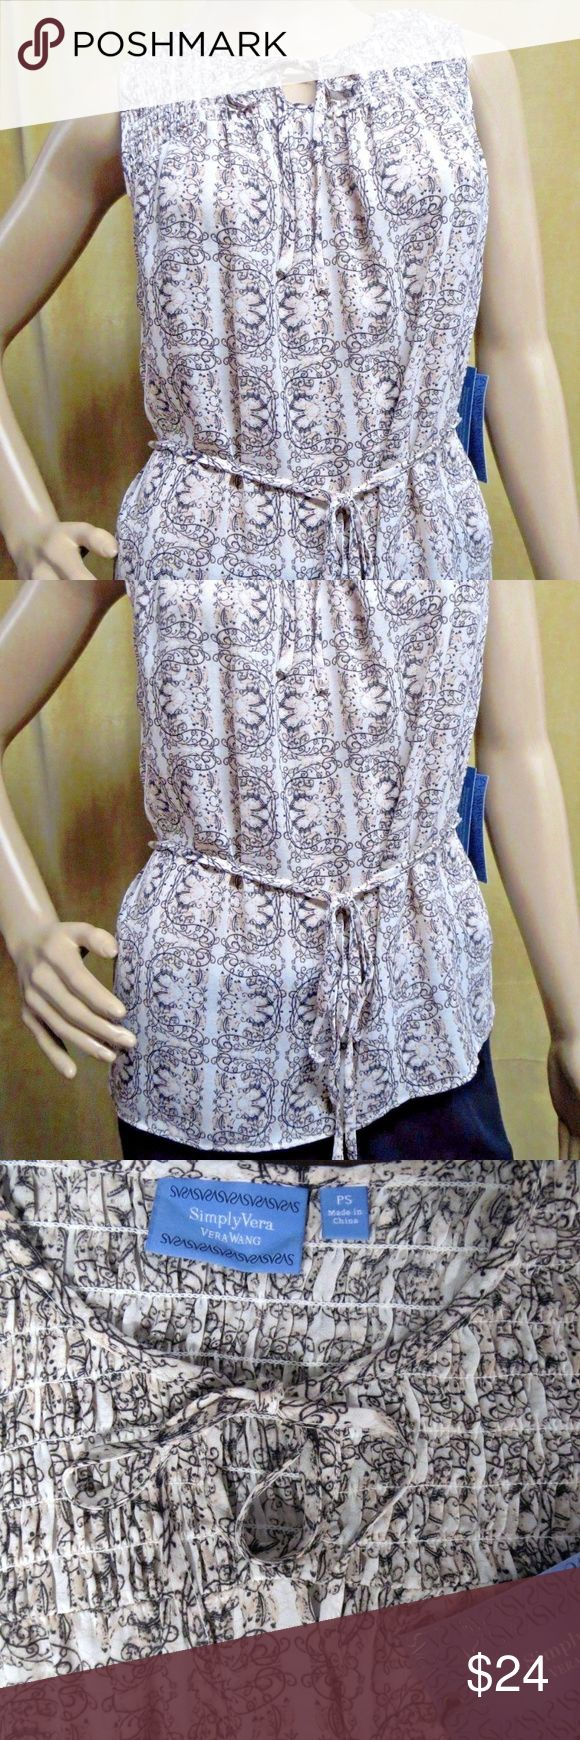 "Simply Vera Wang Petite Smocked Chiffon Blouse New NWT New Retail $48.00 Pullover belted tunic top Smocked yoke Scoop keyhole tie neckline Sleeveless Allover beige, taupe print  Chiffon semi sheer construction 100% polyester Machine washable       Size PXS:     Chest 17"" across front and length from shoulder to hem 22.5"".        Size PS :     Chest 18"" across front and length from shoulder to hem 23"". Simply Vera Vera Wang Tops"